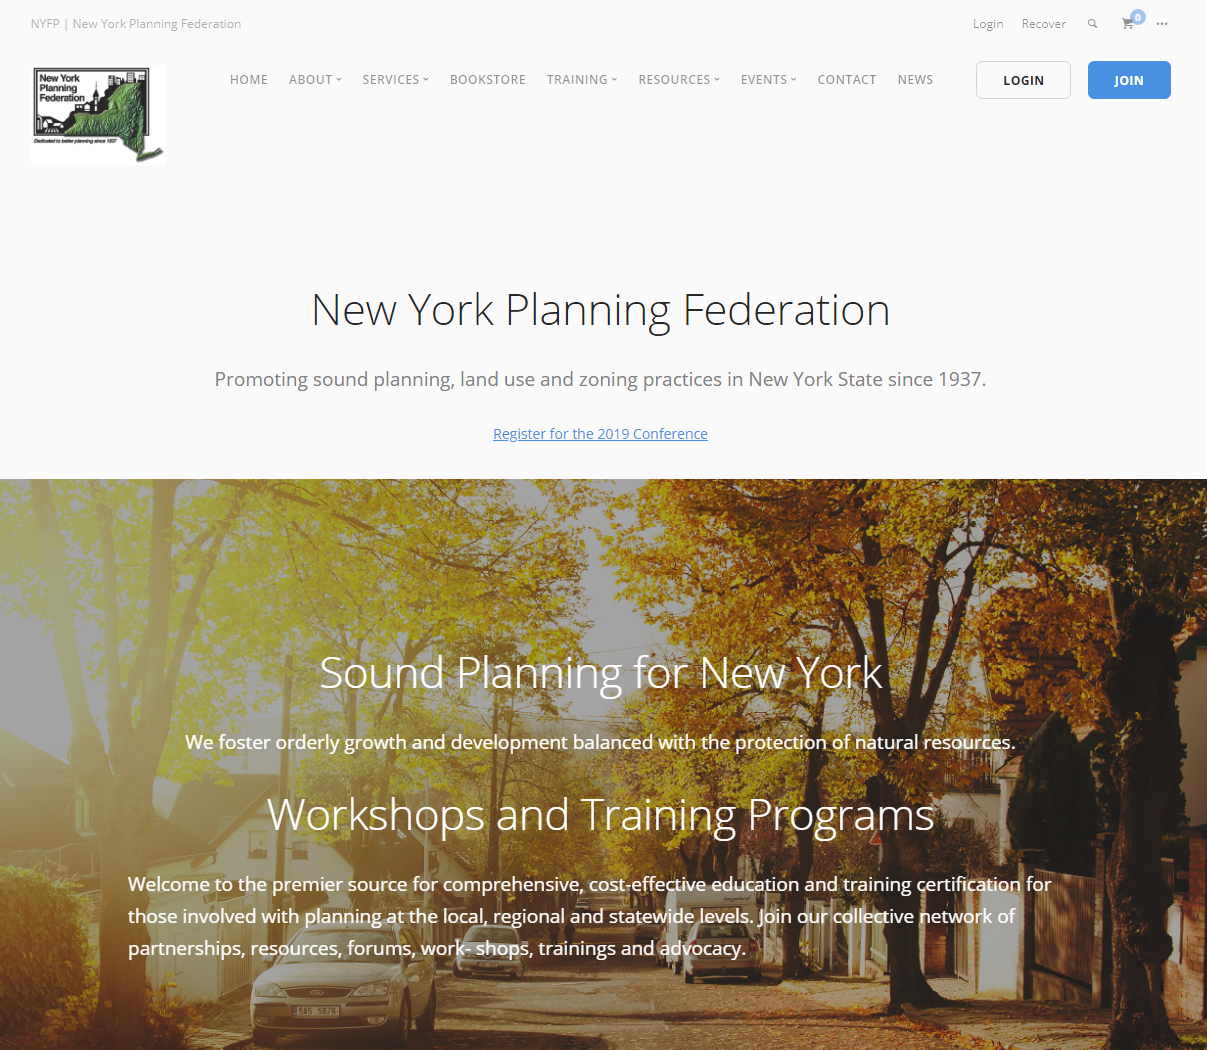 A screenshot of the New York Planning Federation web site